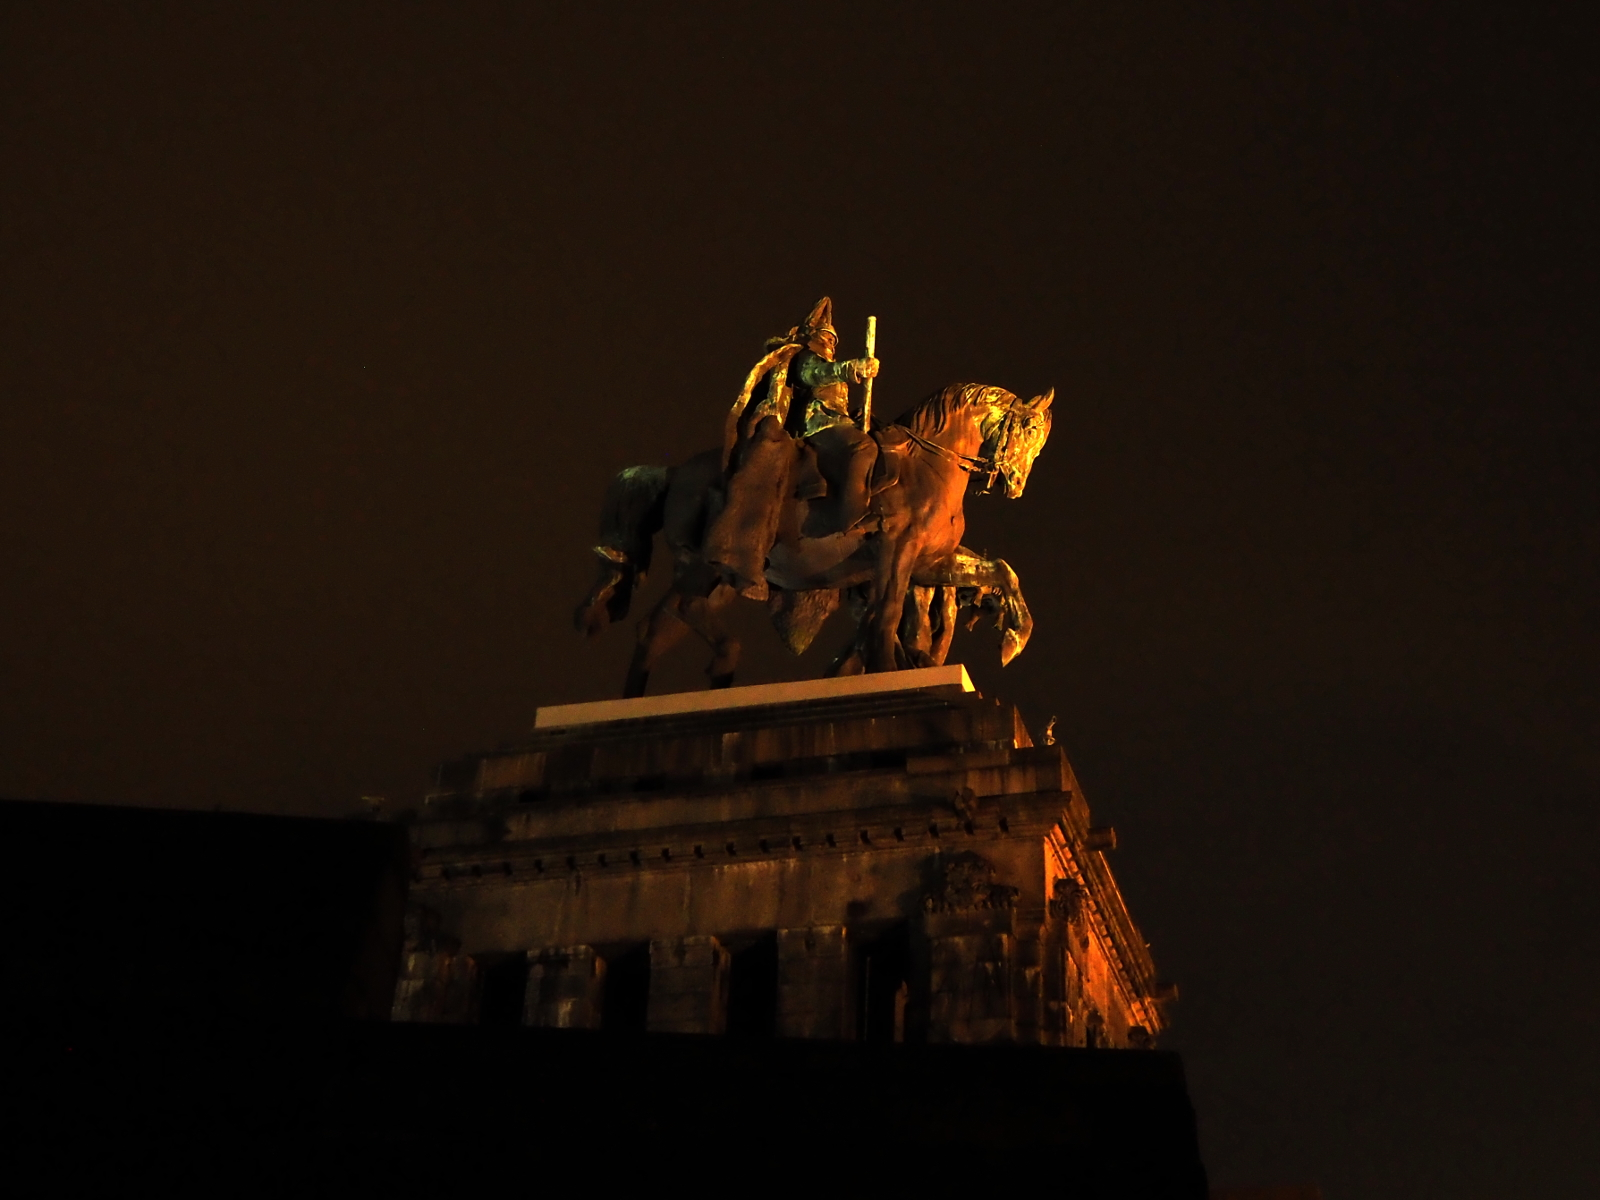 Heroic statue of general on a horse